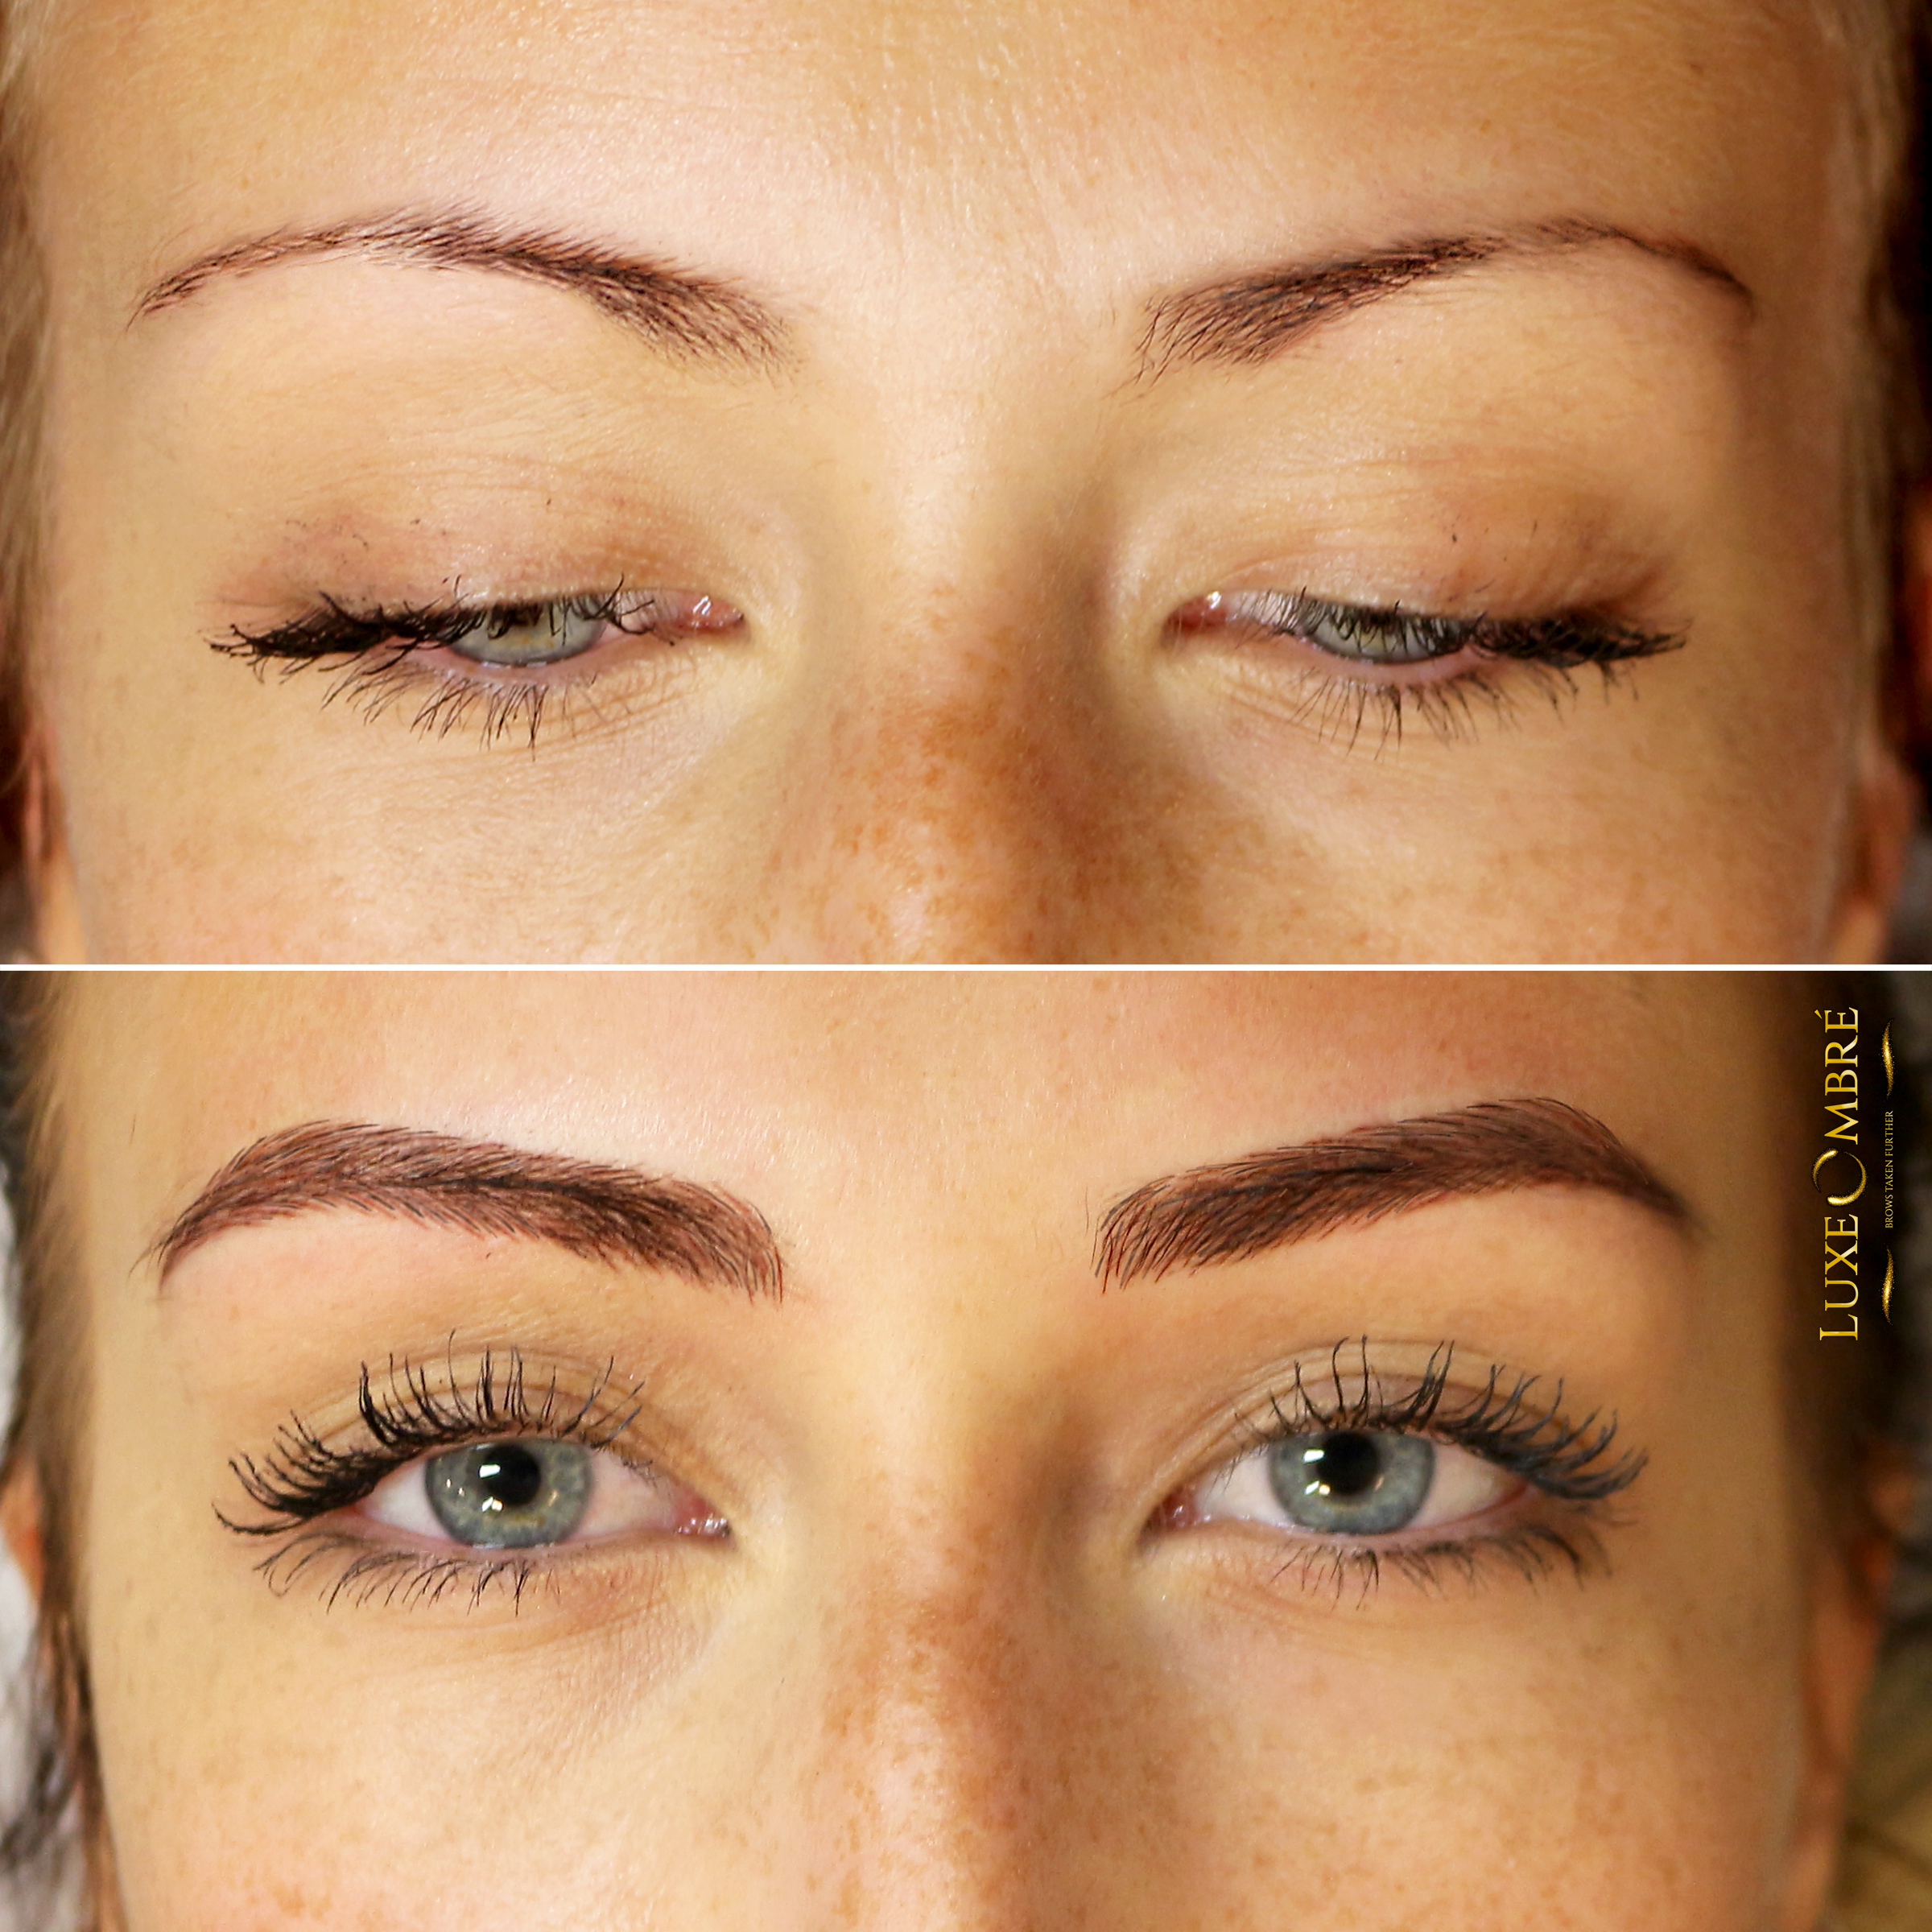 LuxeOmbre combined with some microblading used to save a pair of brows.